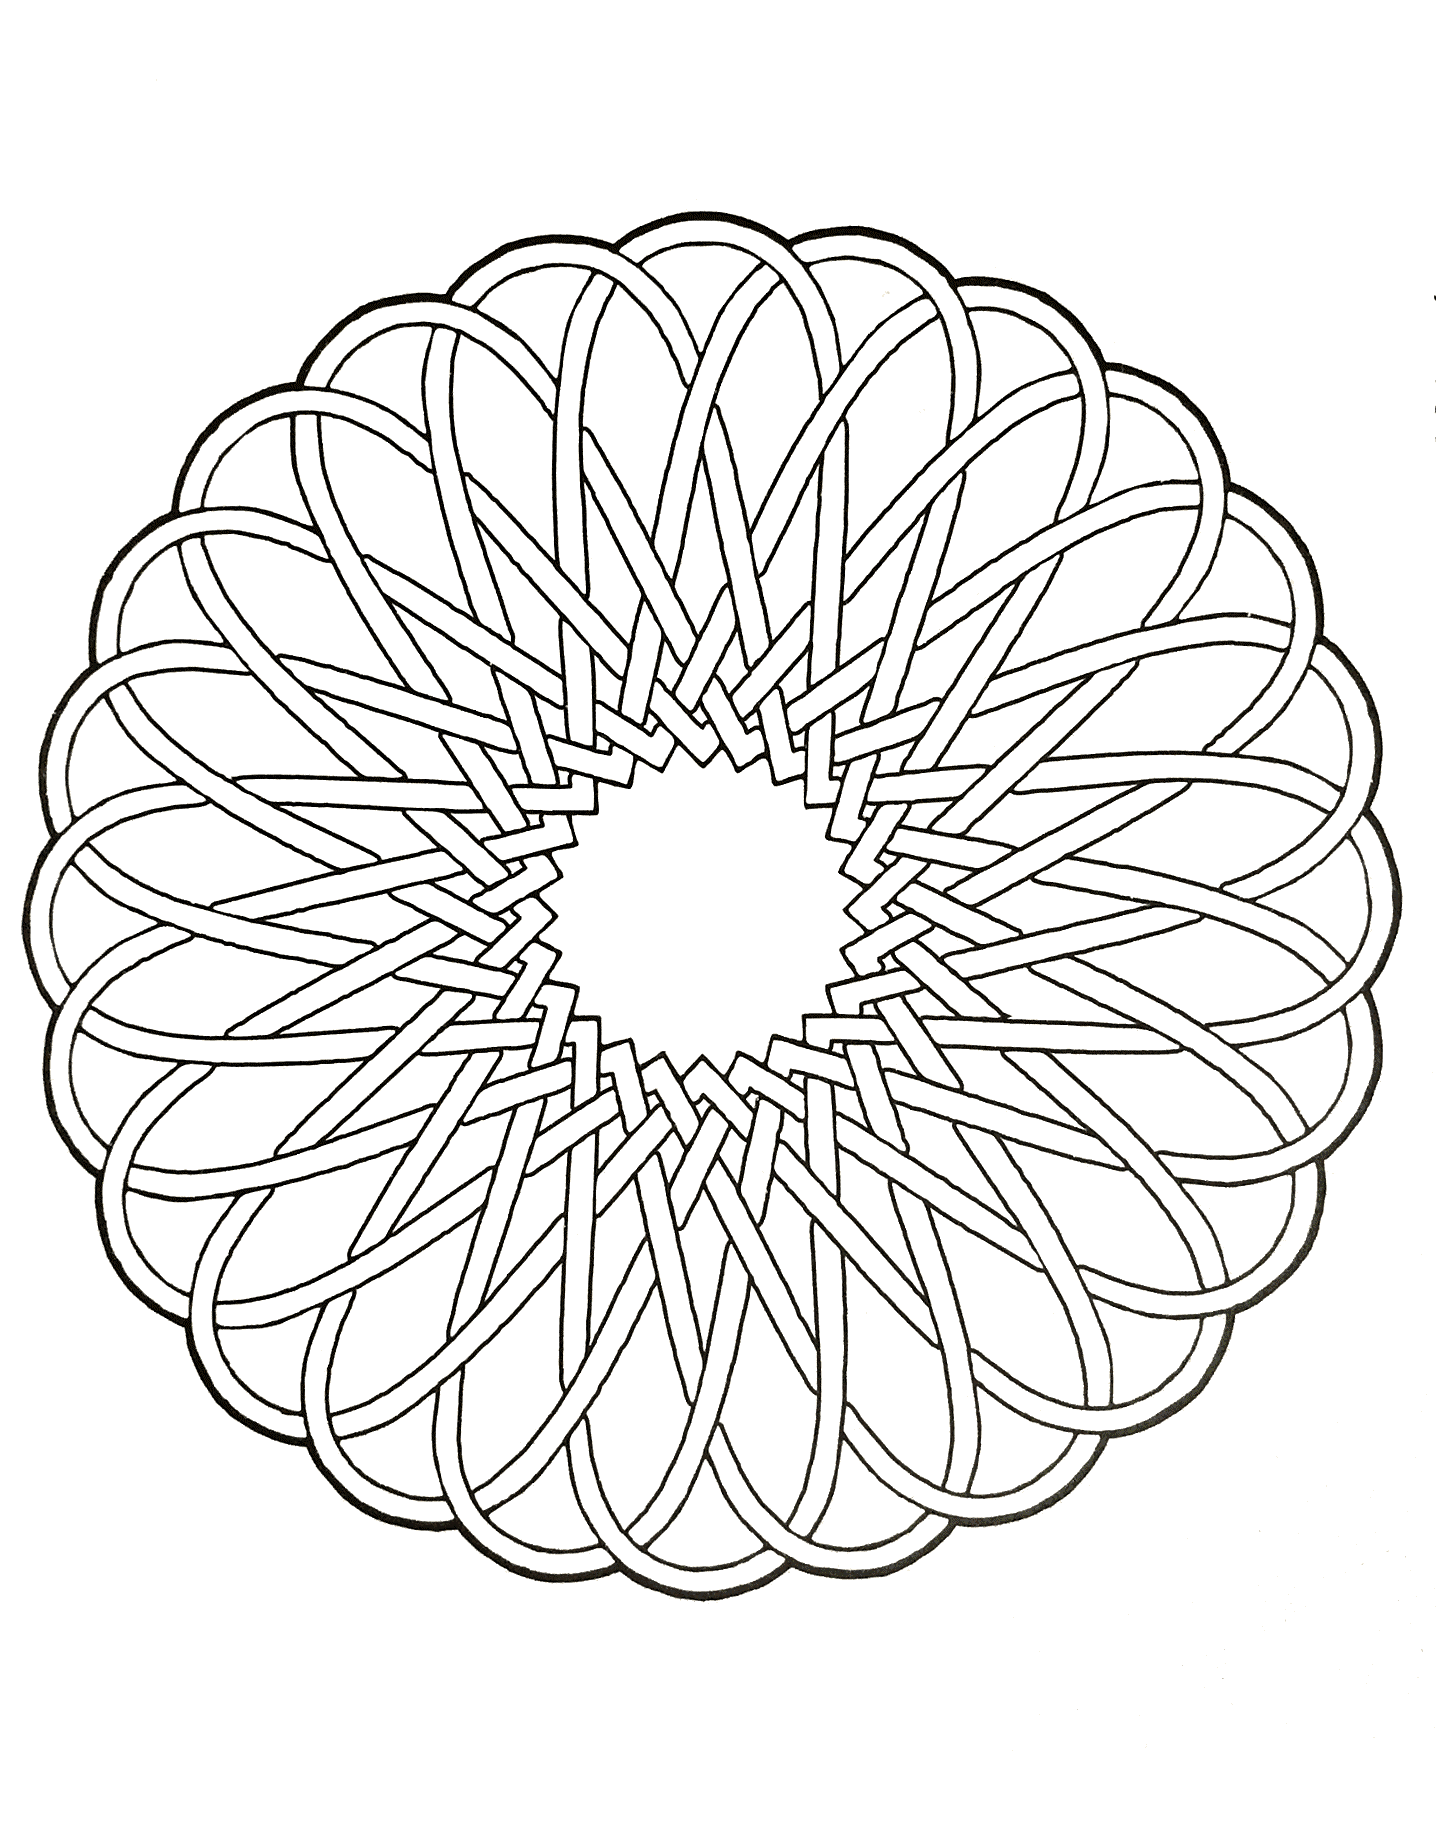 Free coloring page mandalas-to-download-for-free-12. | ADULT ...